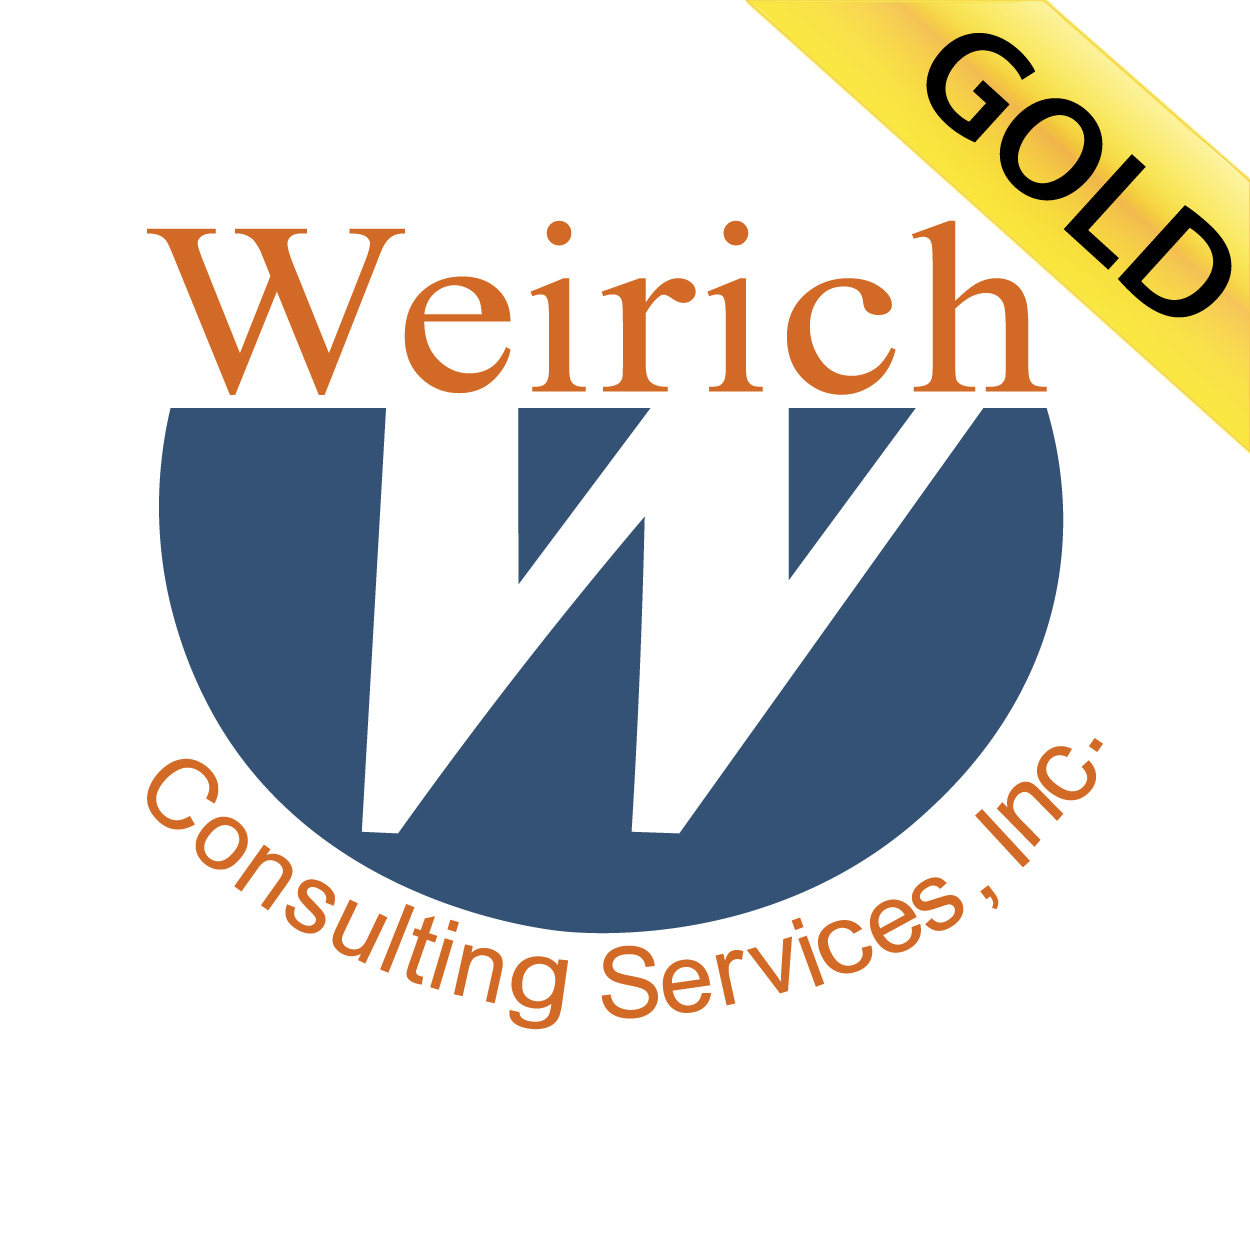 Weirich Consulting Services, Inc.